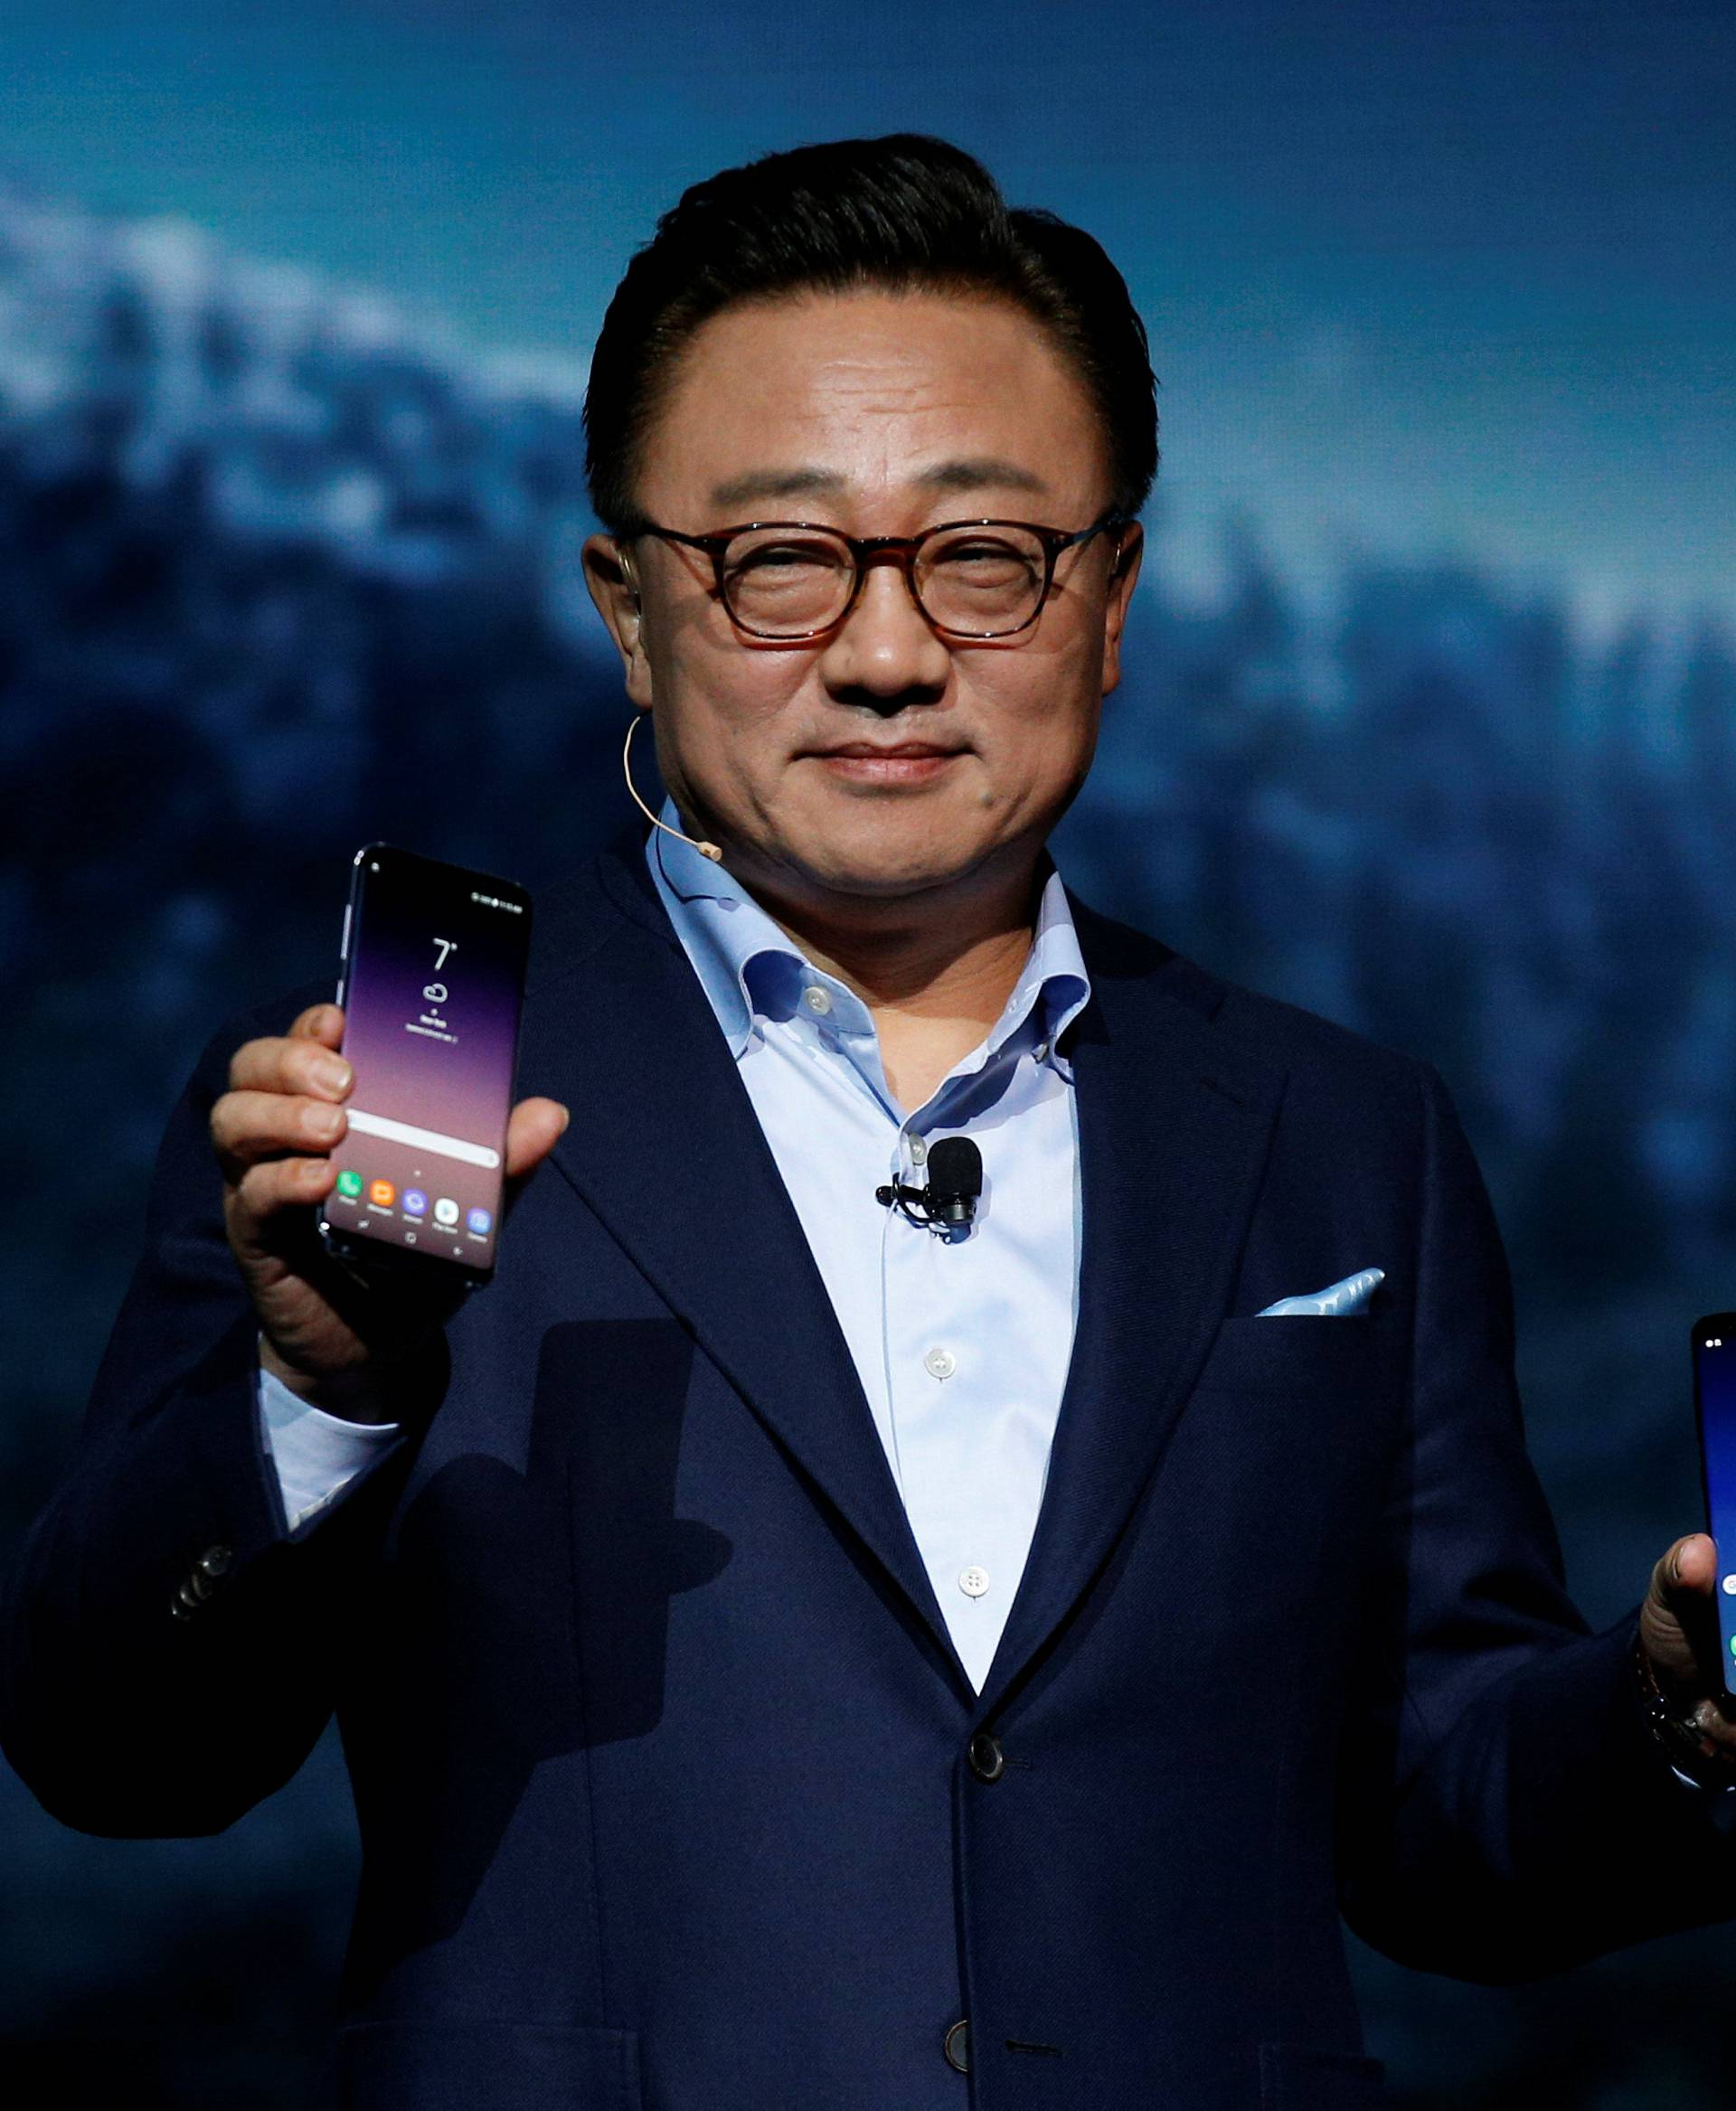 DJ Koh, Samsung president of mobile Communications, shows the Galaxy S8 and S8 + smartphones during the Samsung Unpacked event in New York